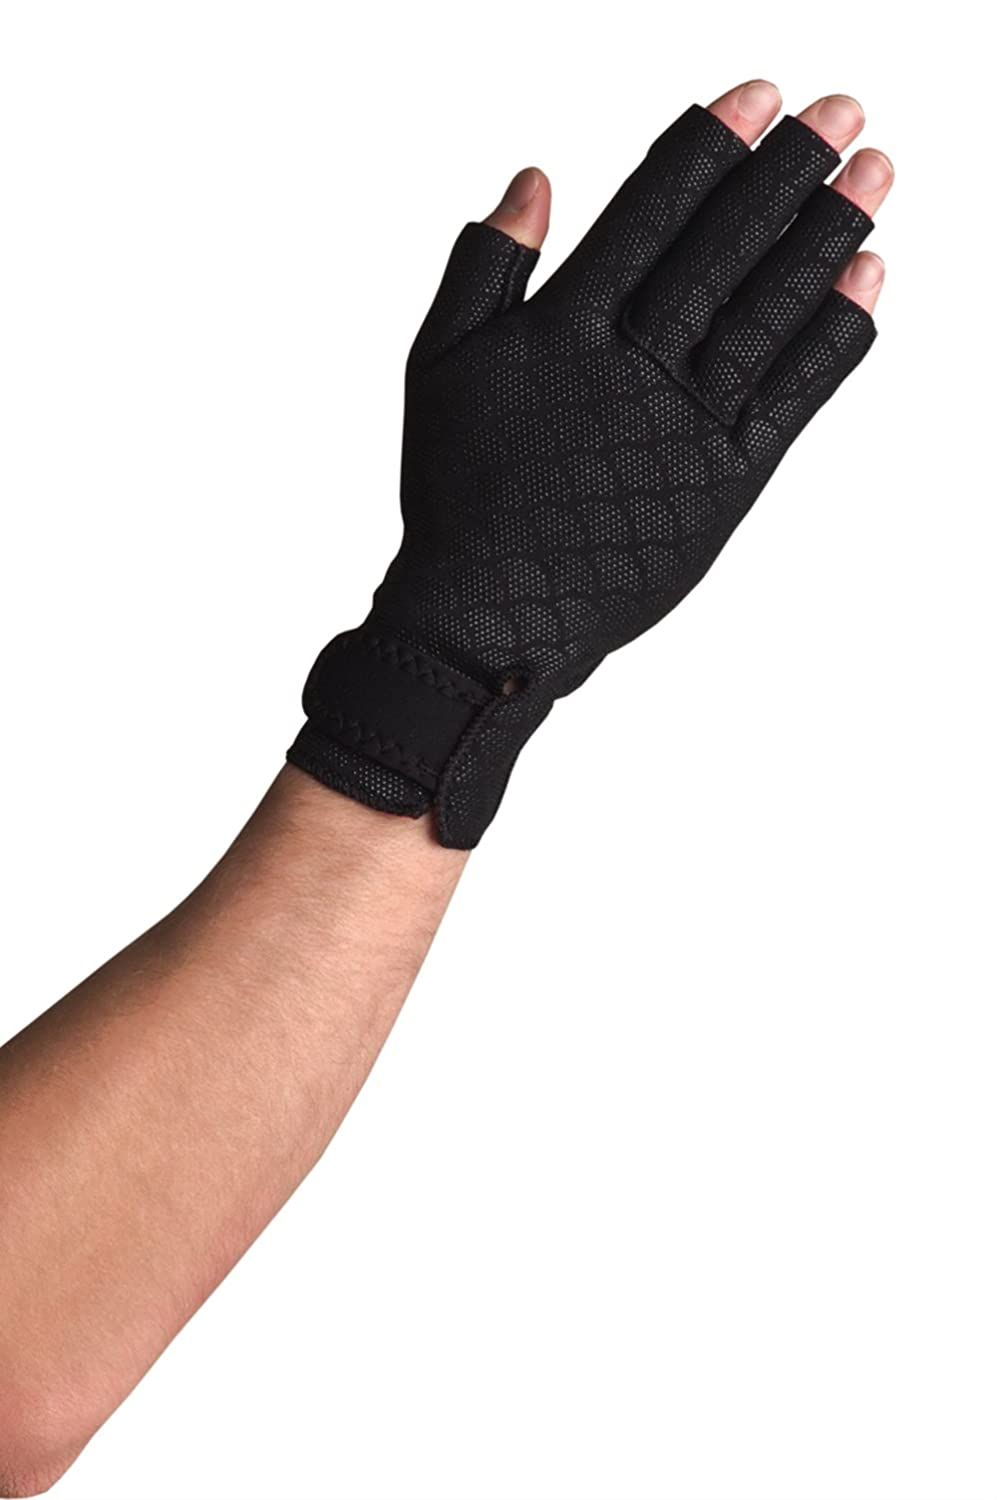 Driving gloves for arthritic hands - Amazon Com Thermoskin Premium Arthritic Gloves Pair Black X Small Health Personal Care